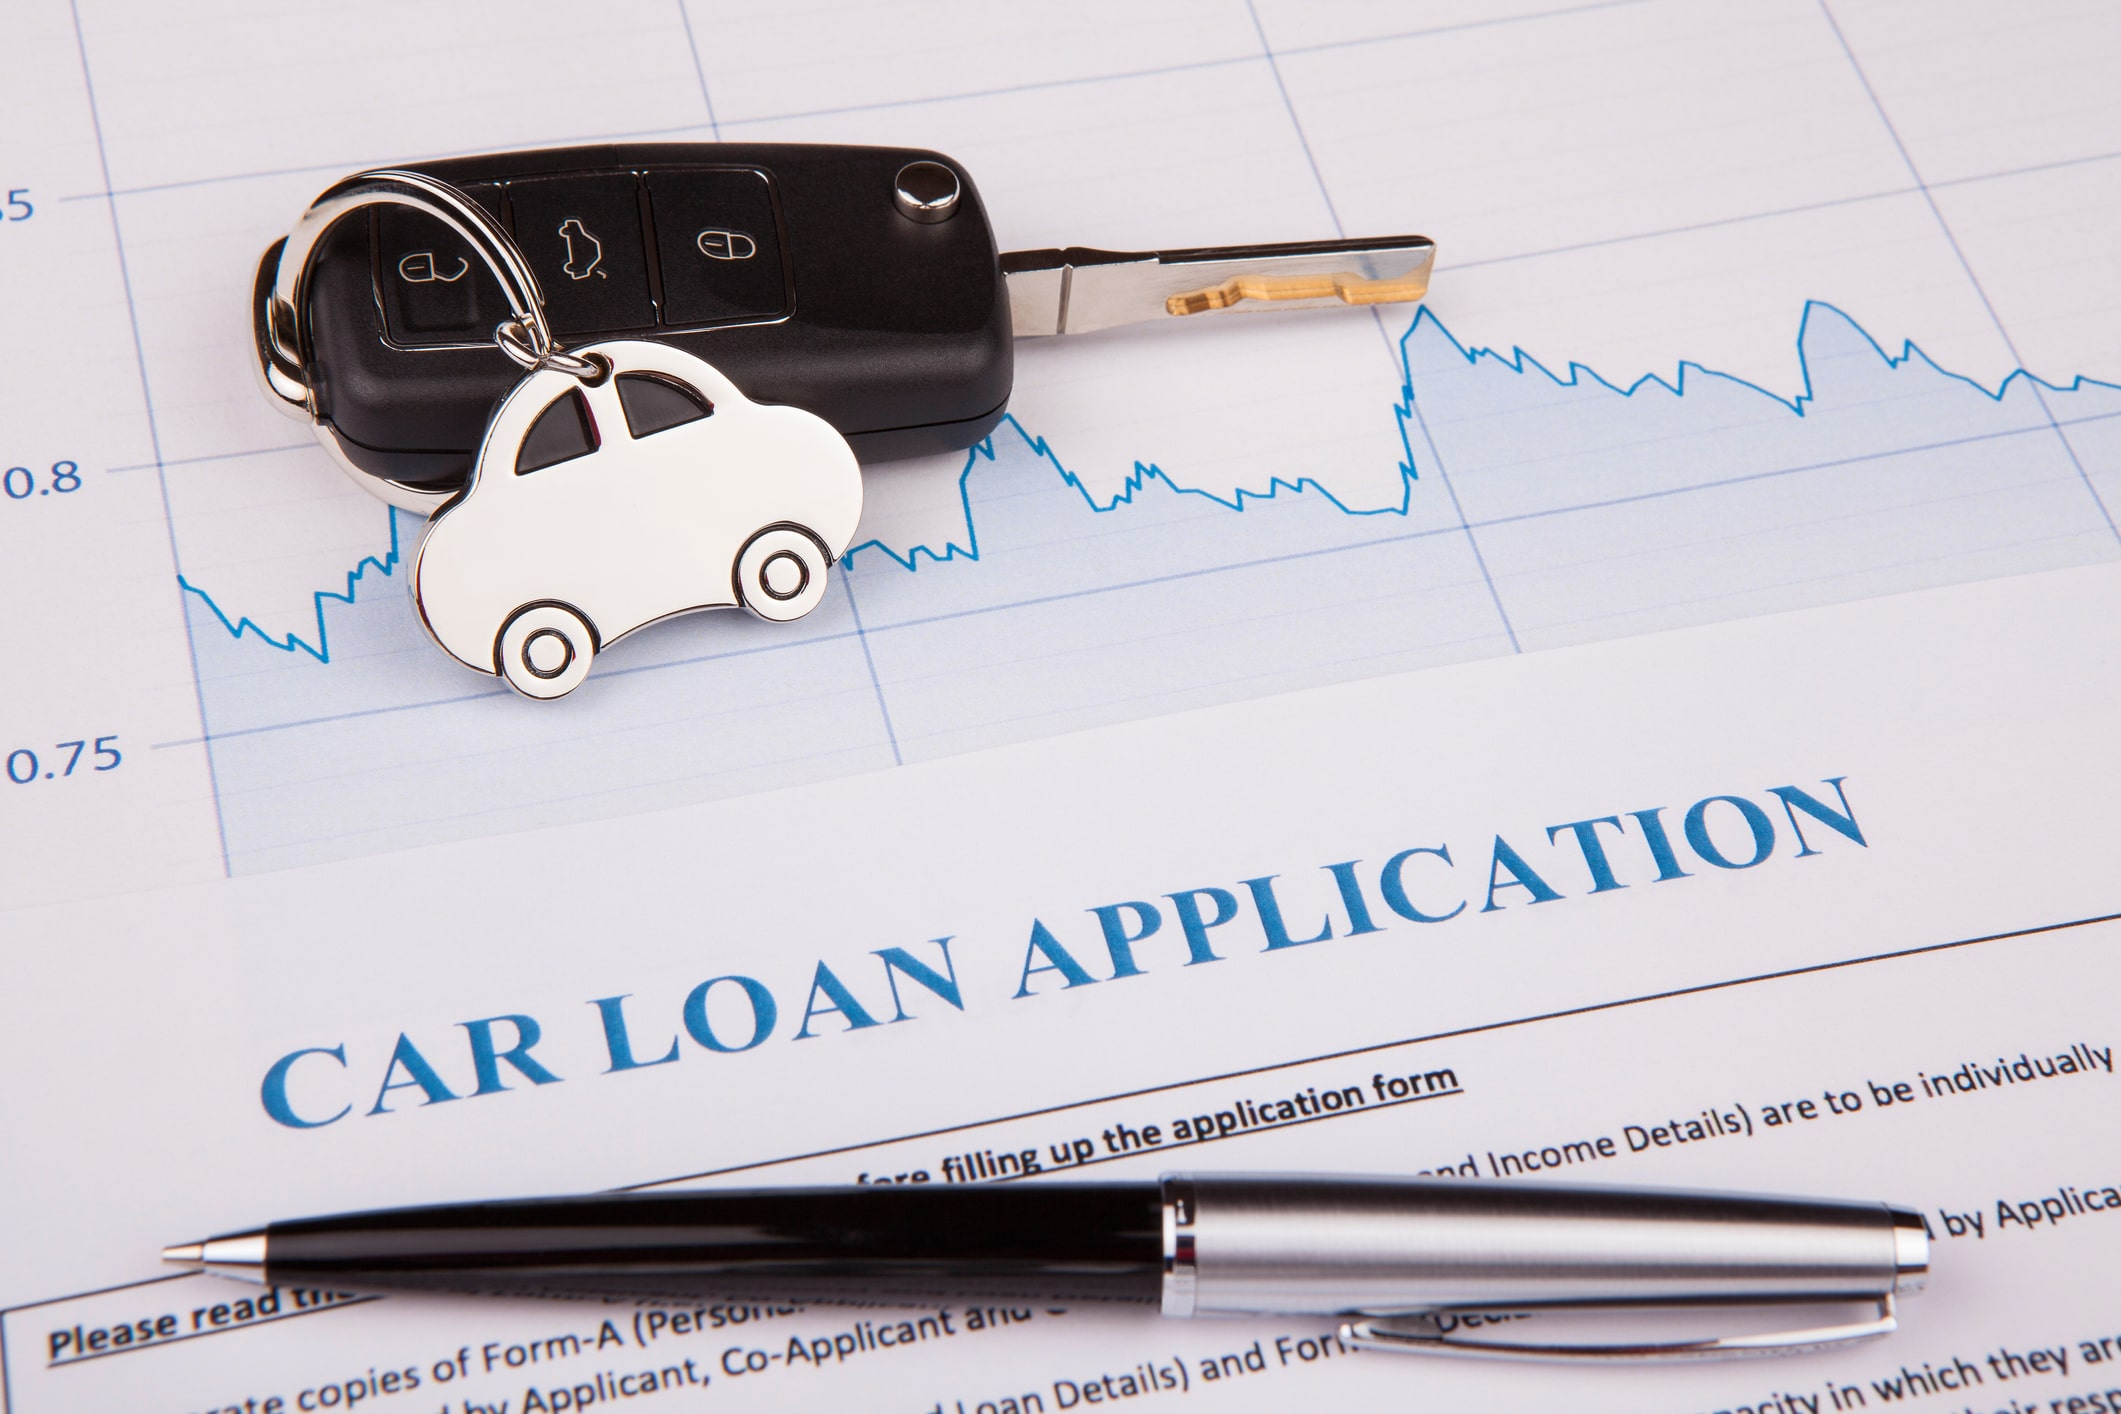 Car Loan Application With Bad Credit